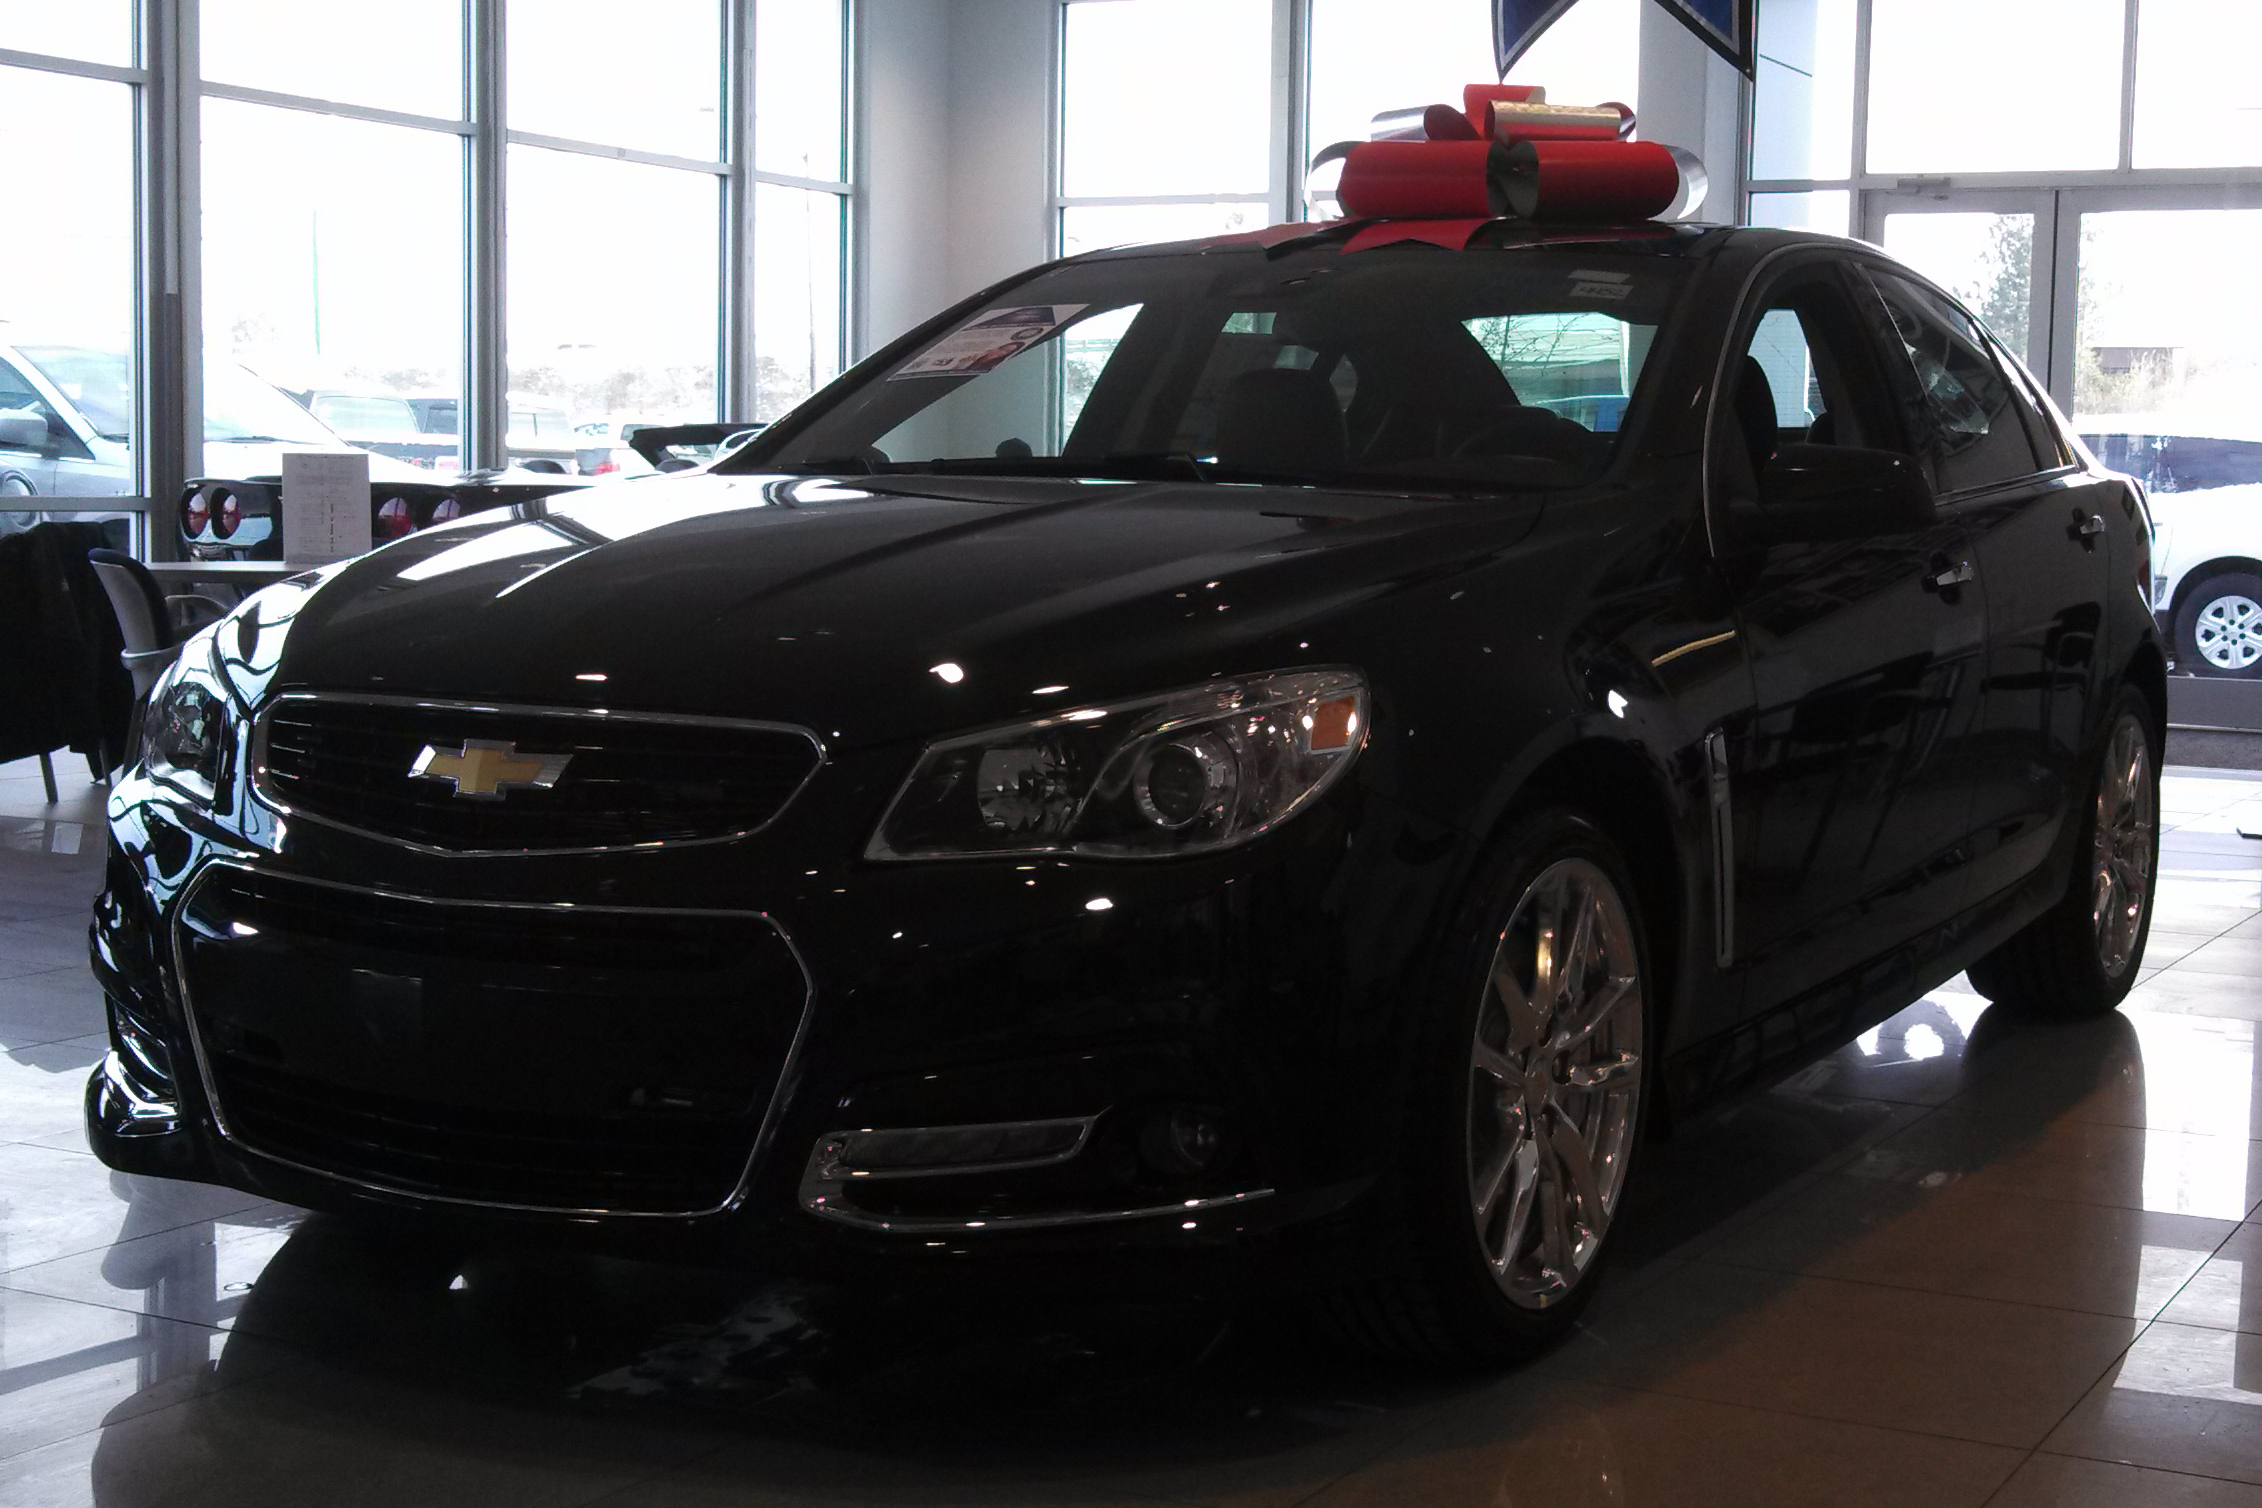 Bill Smith Gmc >> 2014 Chevy Chevrolet SS Sedan at VanDevere Chevrolet in Akron Ohio 2 – The Bunch Blog!